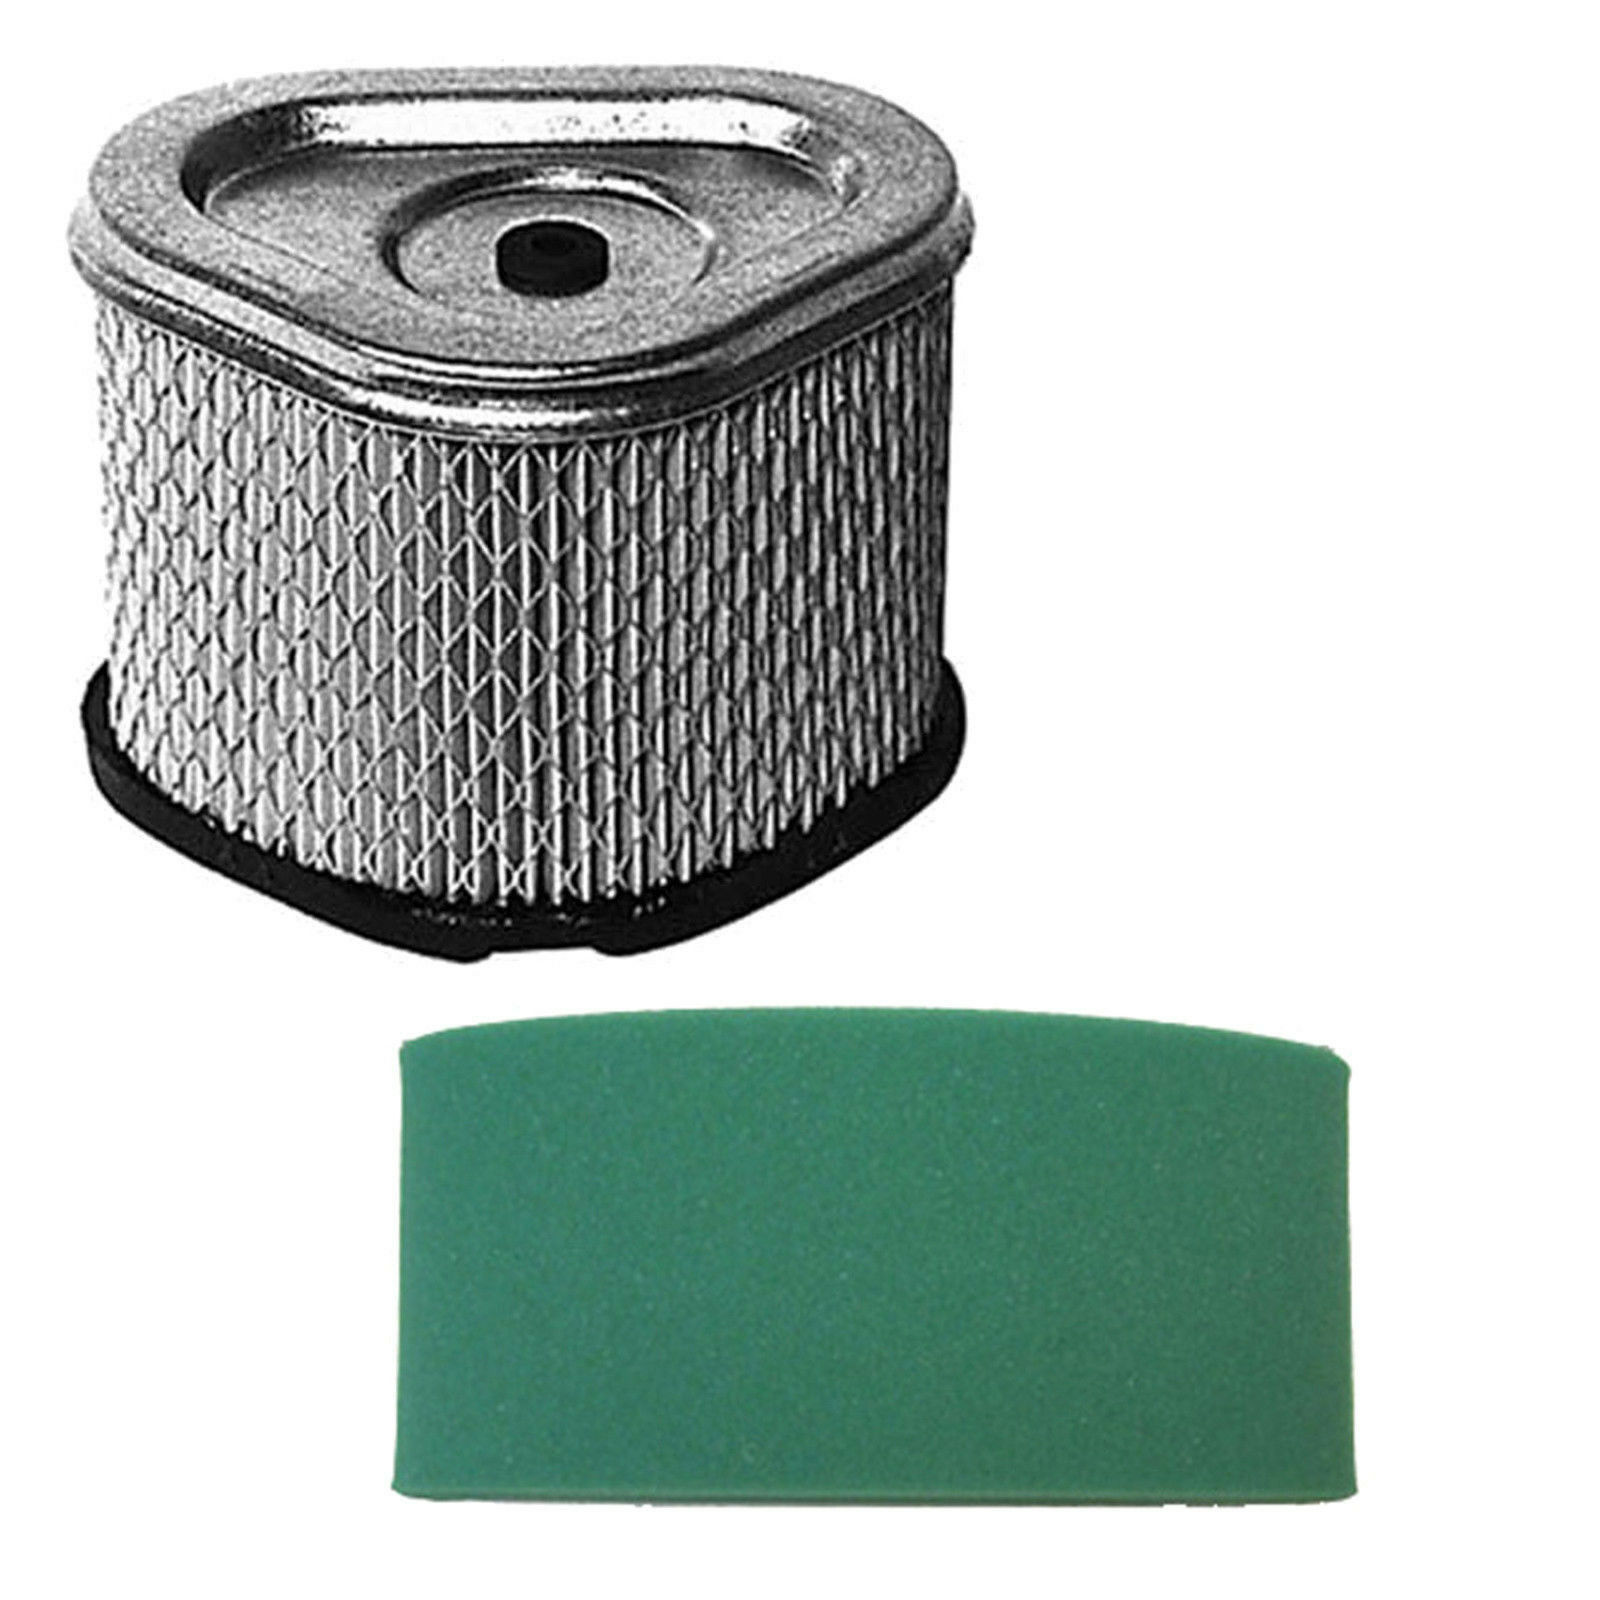 KOHLER 12 883 05-S, OREGON 30-085 AIR FILTER REPLACEMENT WITH PRE-FILTER - $9.80